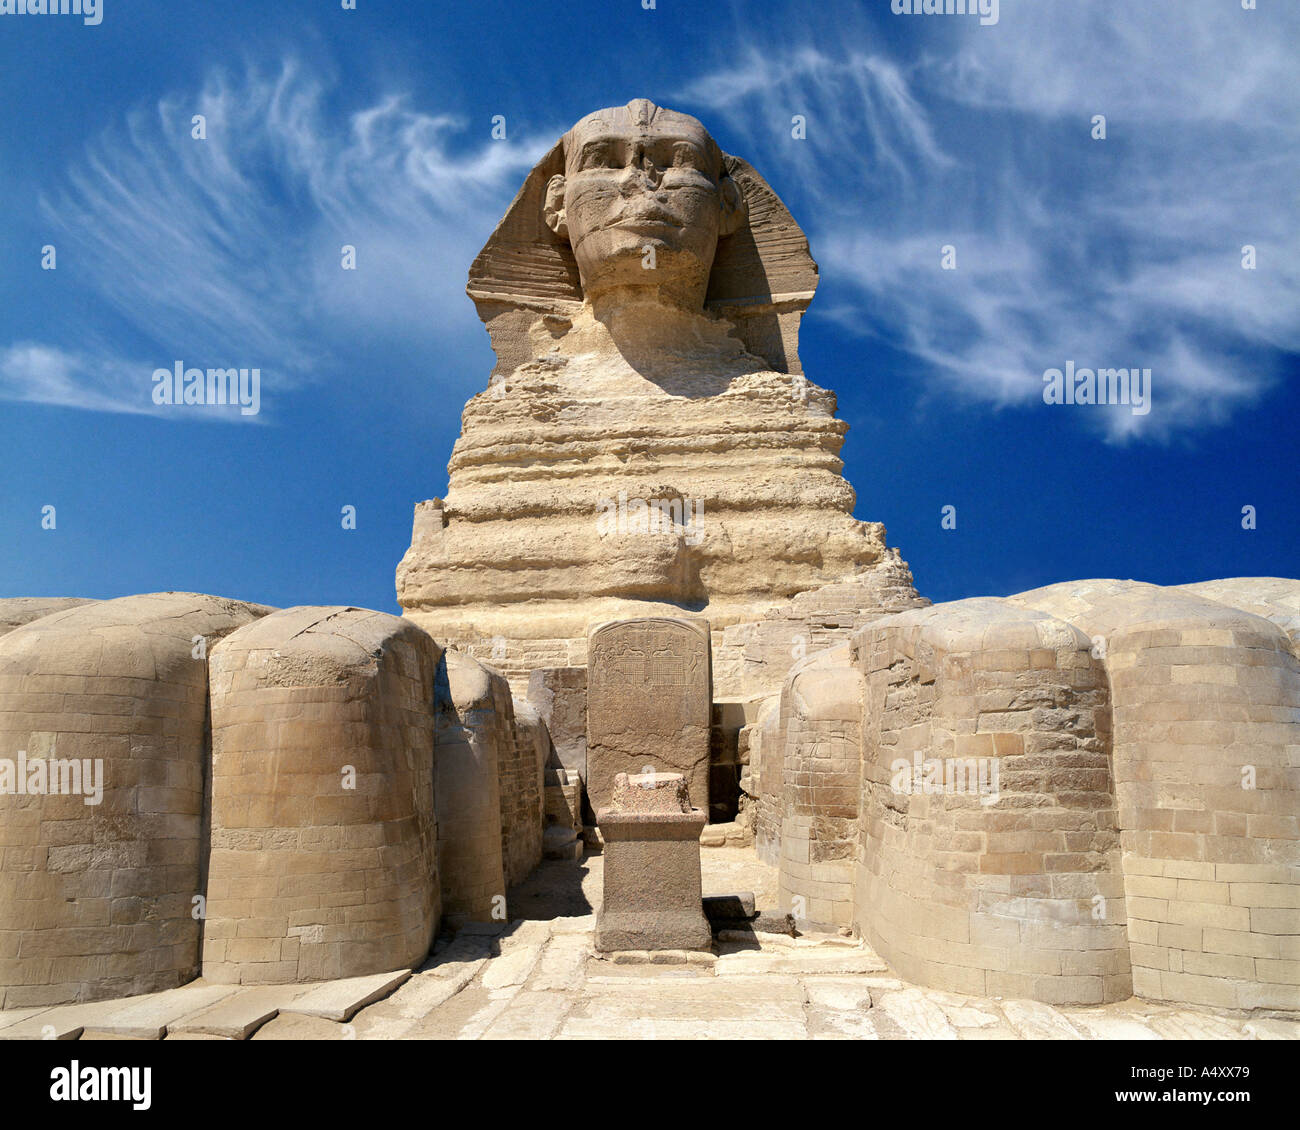 EG - CAIRO: The Sphinx at El Giza - Stock Image